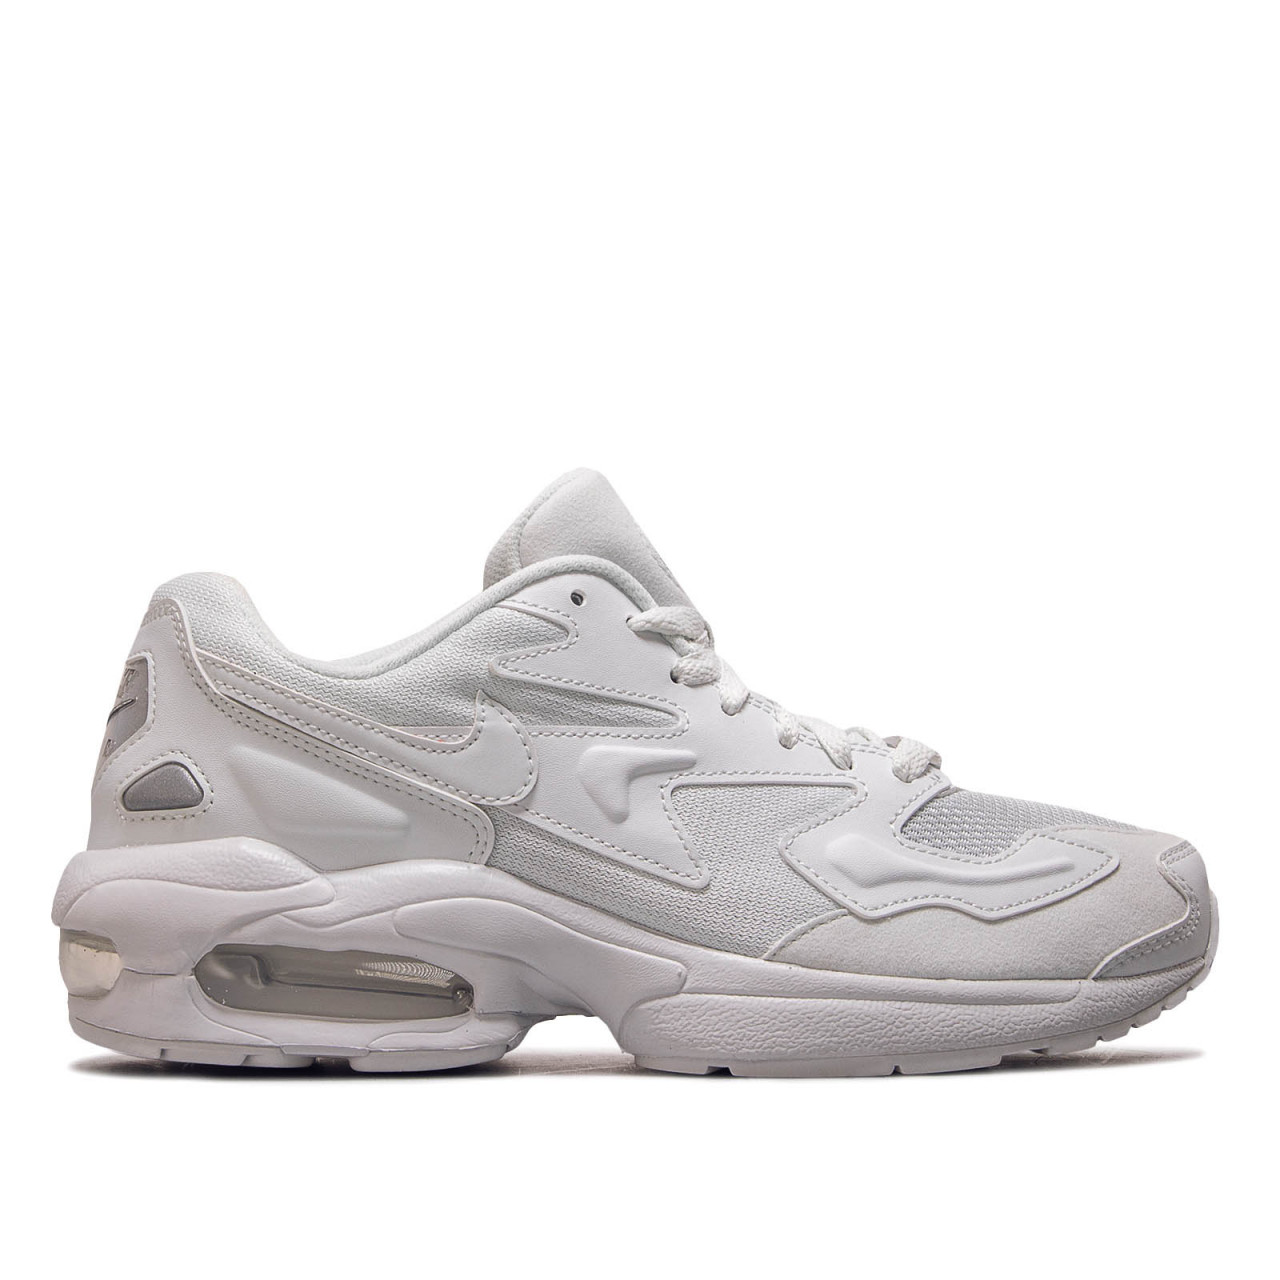 Unisex Sneaker Air Max 2 Light White White